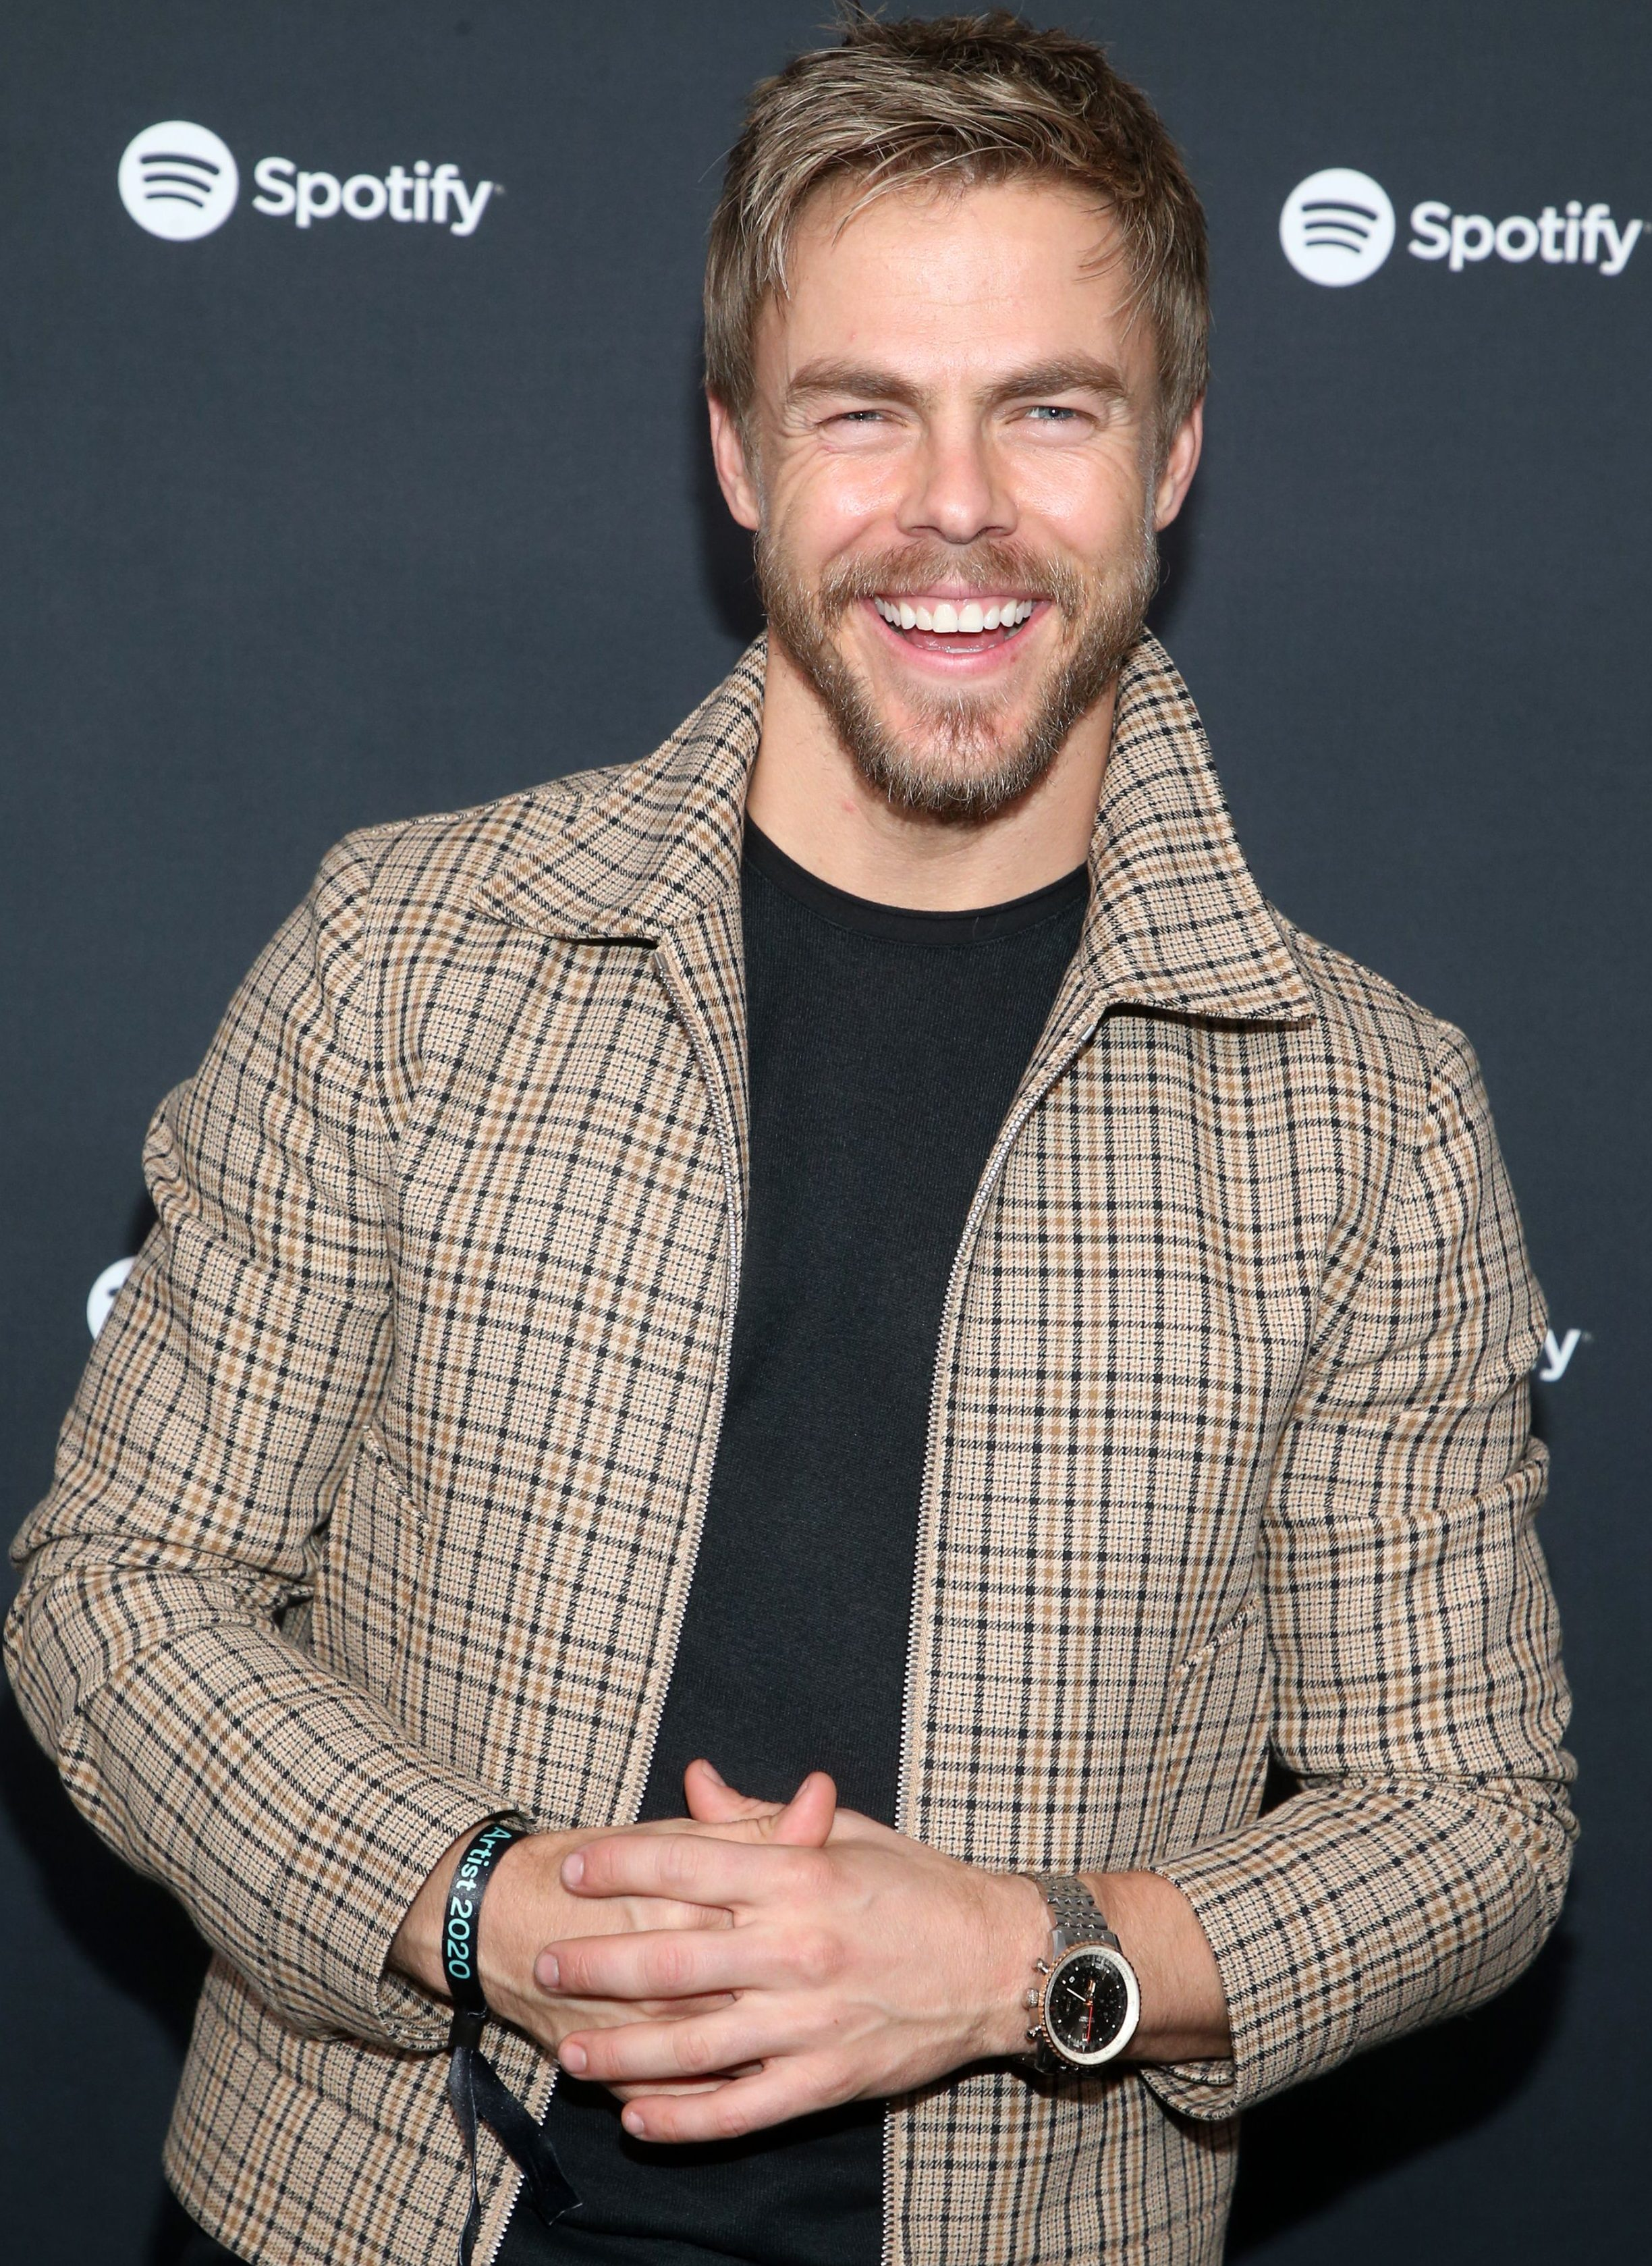 Derek Hough to Appear in Season 2 of High School Musical: The Musical: The Series